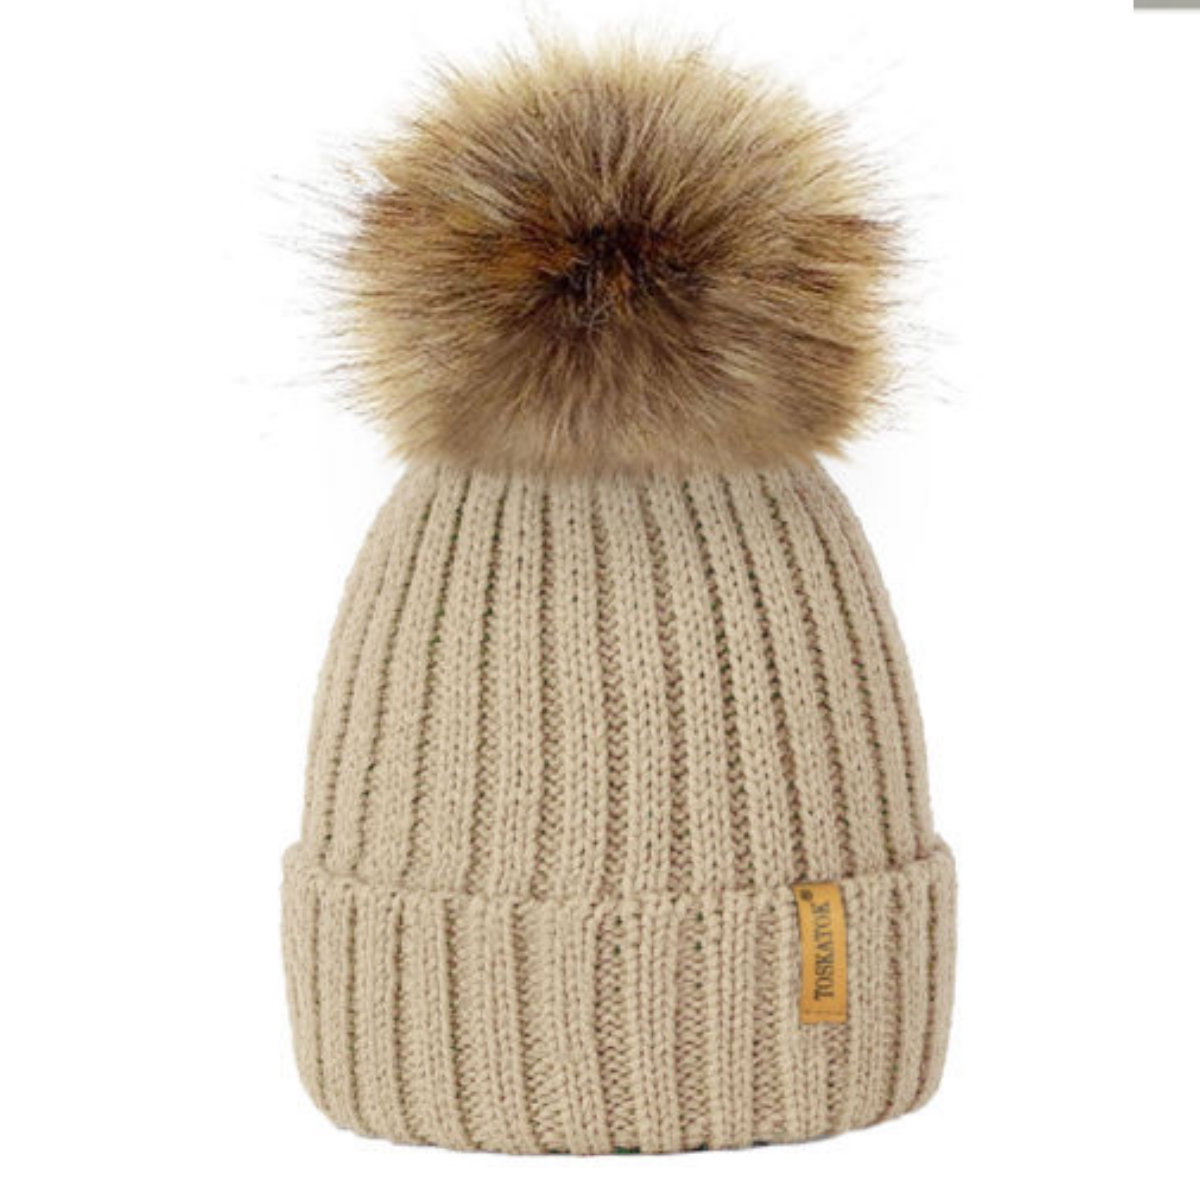 Ribbed Beanie Hat With Detachable Large Faux Fur Pom Pom (Beige ... 7e7ee4a4f81